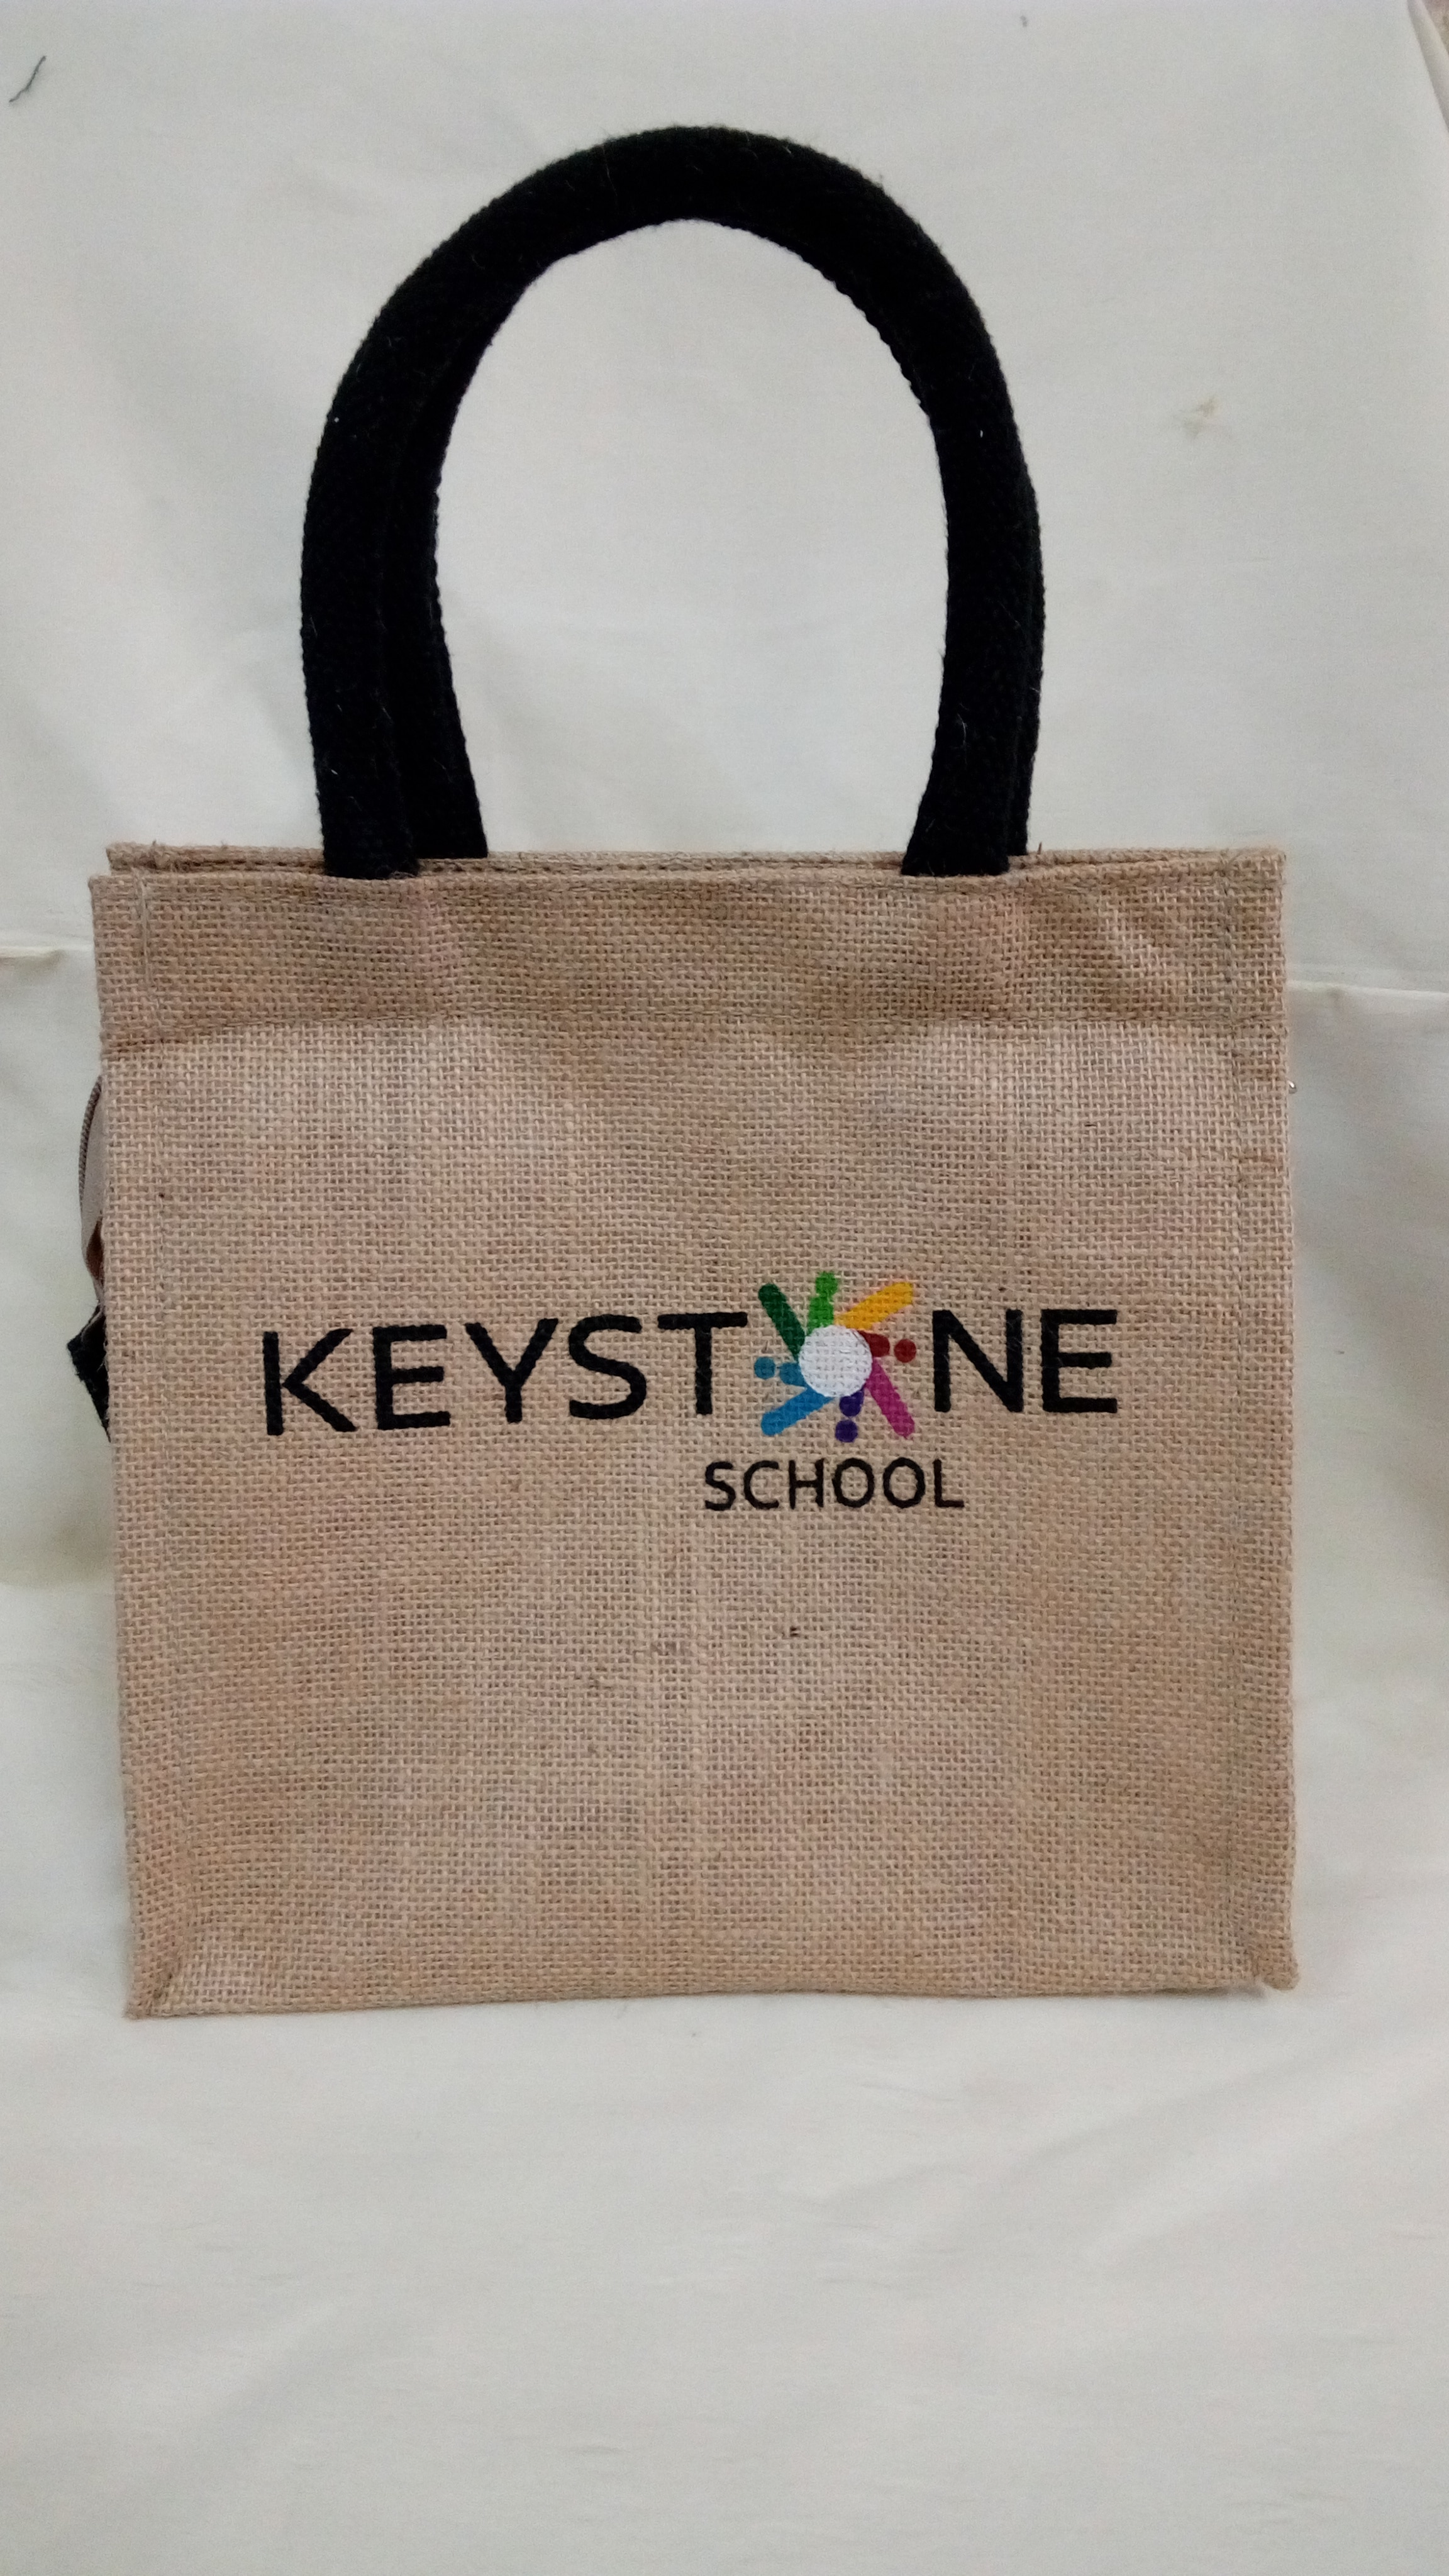 Saran Jute Bags is a leading Jute Bags Manufacturer with FineQualityJuteMaterial. We manufacture JuteCarryBags , JuteVegetableBags , JuteSchoolBags , JuteTravelBags , JuteFileFolders , DesignerLadiesHandBags , LunchBags , WaterBottleBags , Potlis , Handpurses , ReturnGiftBags , PromotionalBags , Executive Sling Bags , LaptopBags , Executivebags, MulticolourSlingBags etc.   This is Jute Lunch bag, it can be given as a #Returngift in Birthday party and Functions and it is bio-degradable , Eco-Friendly in nature. Your logo or message can be printed on it and customization also will be done. We take Bulkorders also .   **For a Small Change StopUsingPlasticbags and StartUsingJuteBags  **Today'sSavings is TomorrowsEarnings. SaveEnvironment  SavePollution SaveEarth   For more Latest Updates Like and Share our Facebook Page  https://www.facebook.com/Saran-Jute-Bags-323575157681423/  For more Latest Updates Follow us on Twitter Page  https://twitter.com/SaranJuteBags  Our products will be available in Hyderabad Mehdipatnam Telangana AndhraPradesh Mumbai Banglore USA Greystone Frisco ShilparamamHyderabad Labbipet Vijayawada DilipSuperMarketManikonda Manikonda DilipSuperMarketAlkapurTownship AlkapurTownship BalajiGrandBazarKondapur BalajiGrandBazarMehdipatnam SaranJuteBags.  JuteBags JuteBagsManufacturer JuteBagsMaking JuteBagPriniting JuteBagsCustomizePrint